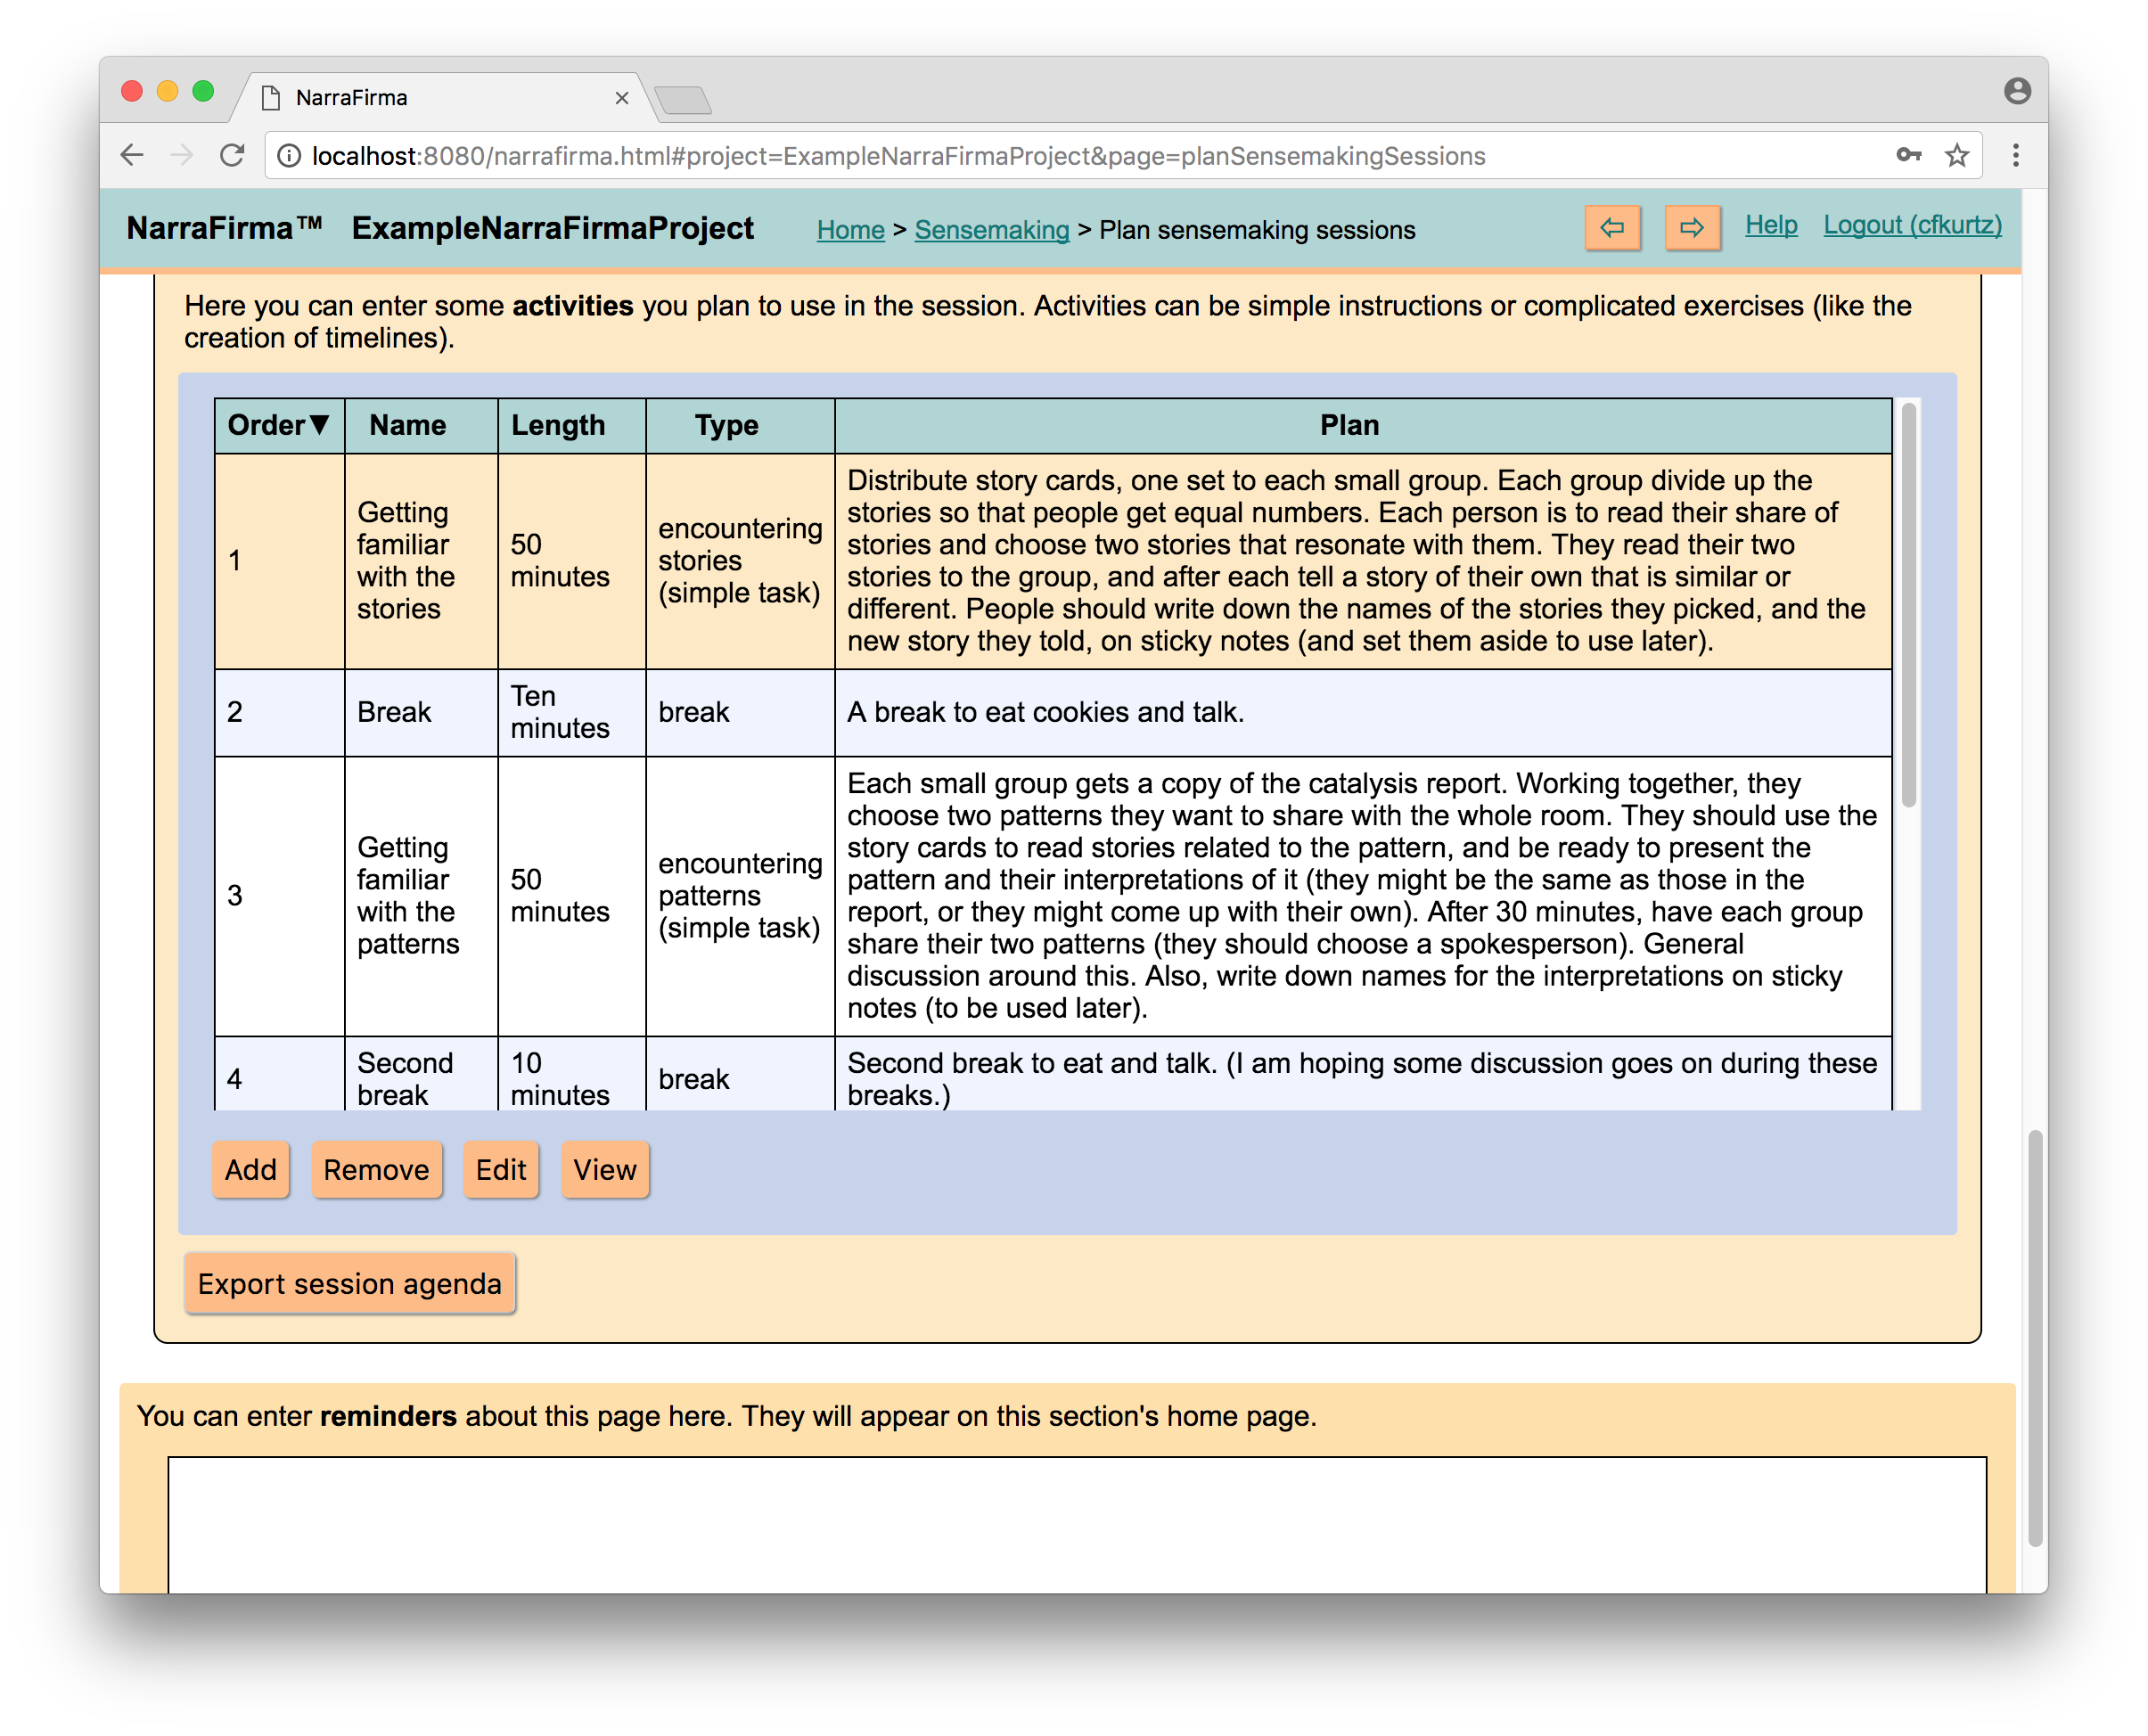 <p>Here the NarraFirma user is designing a plan for a sensemaking session, where people will work with the collected stories and patterns to make sense of the topic being explored.</p>